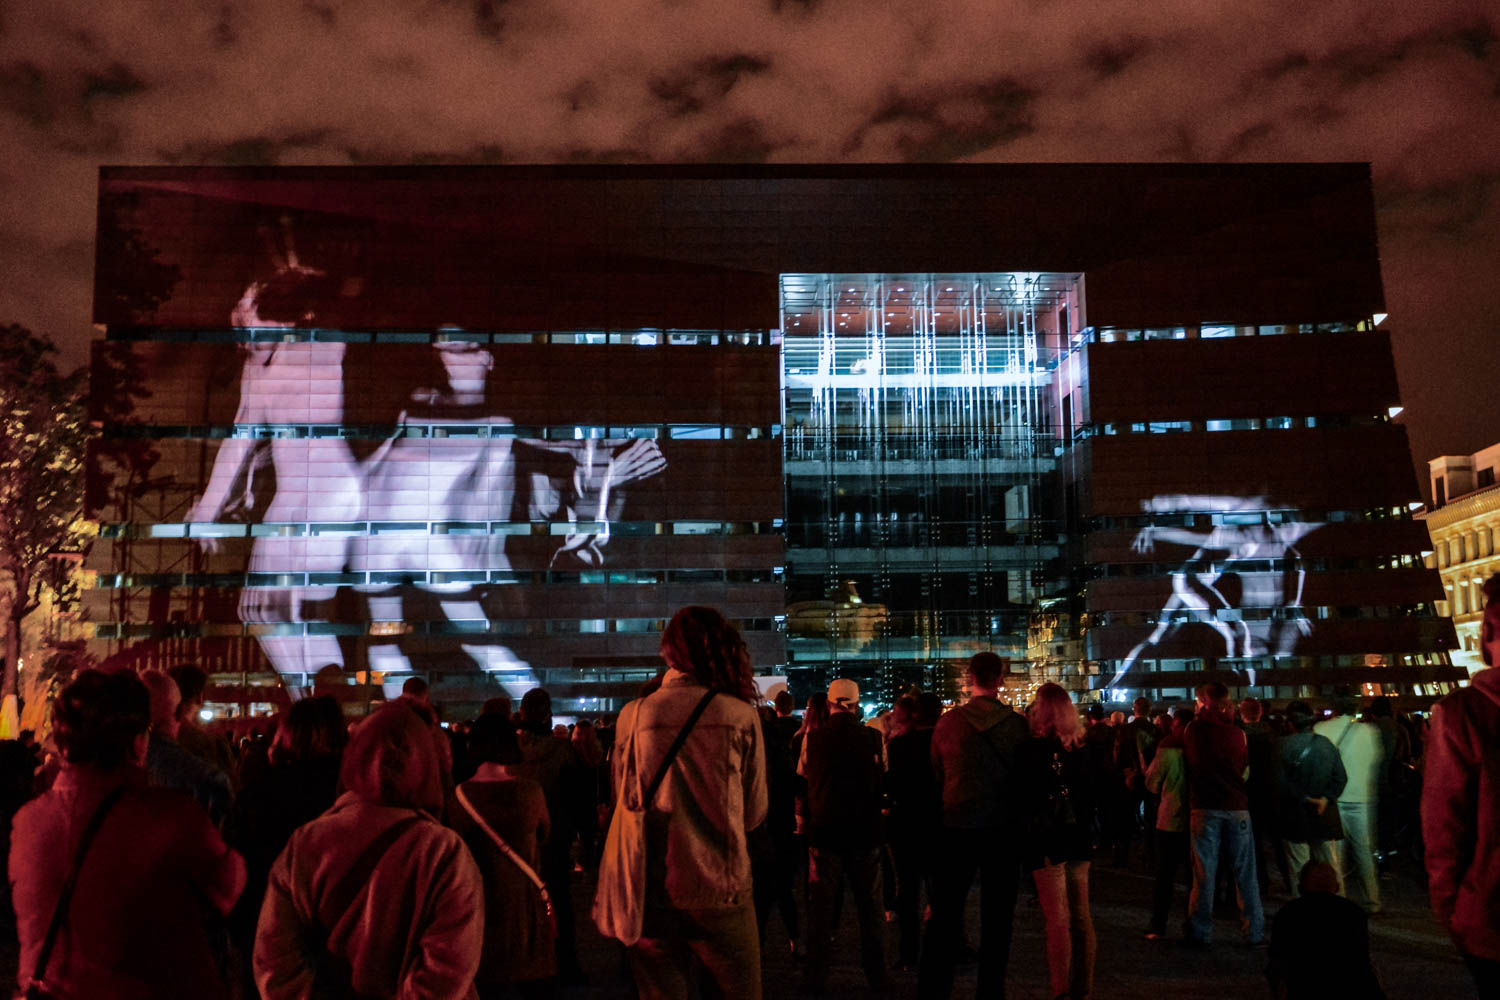 nfm video mapping